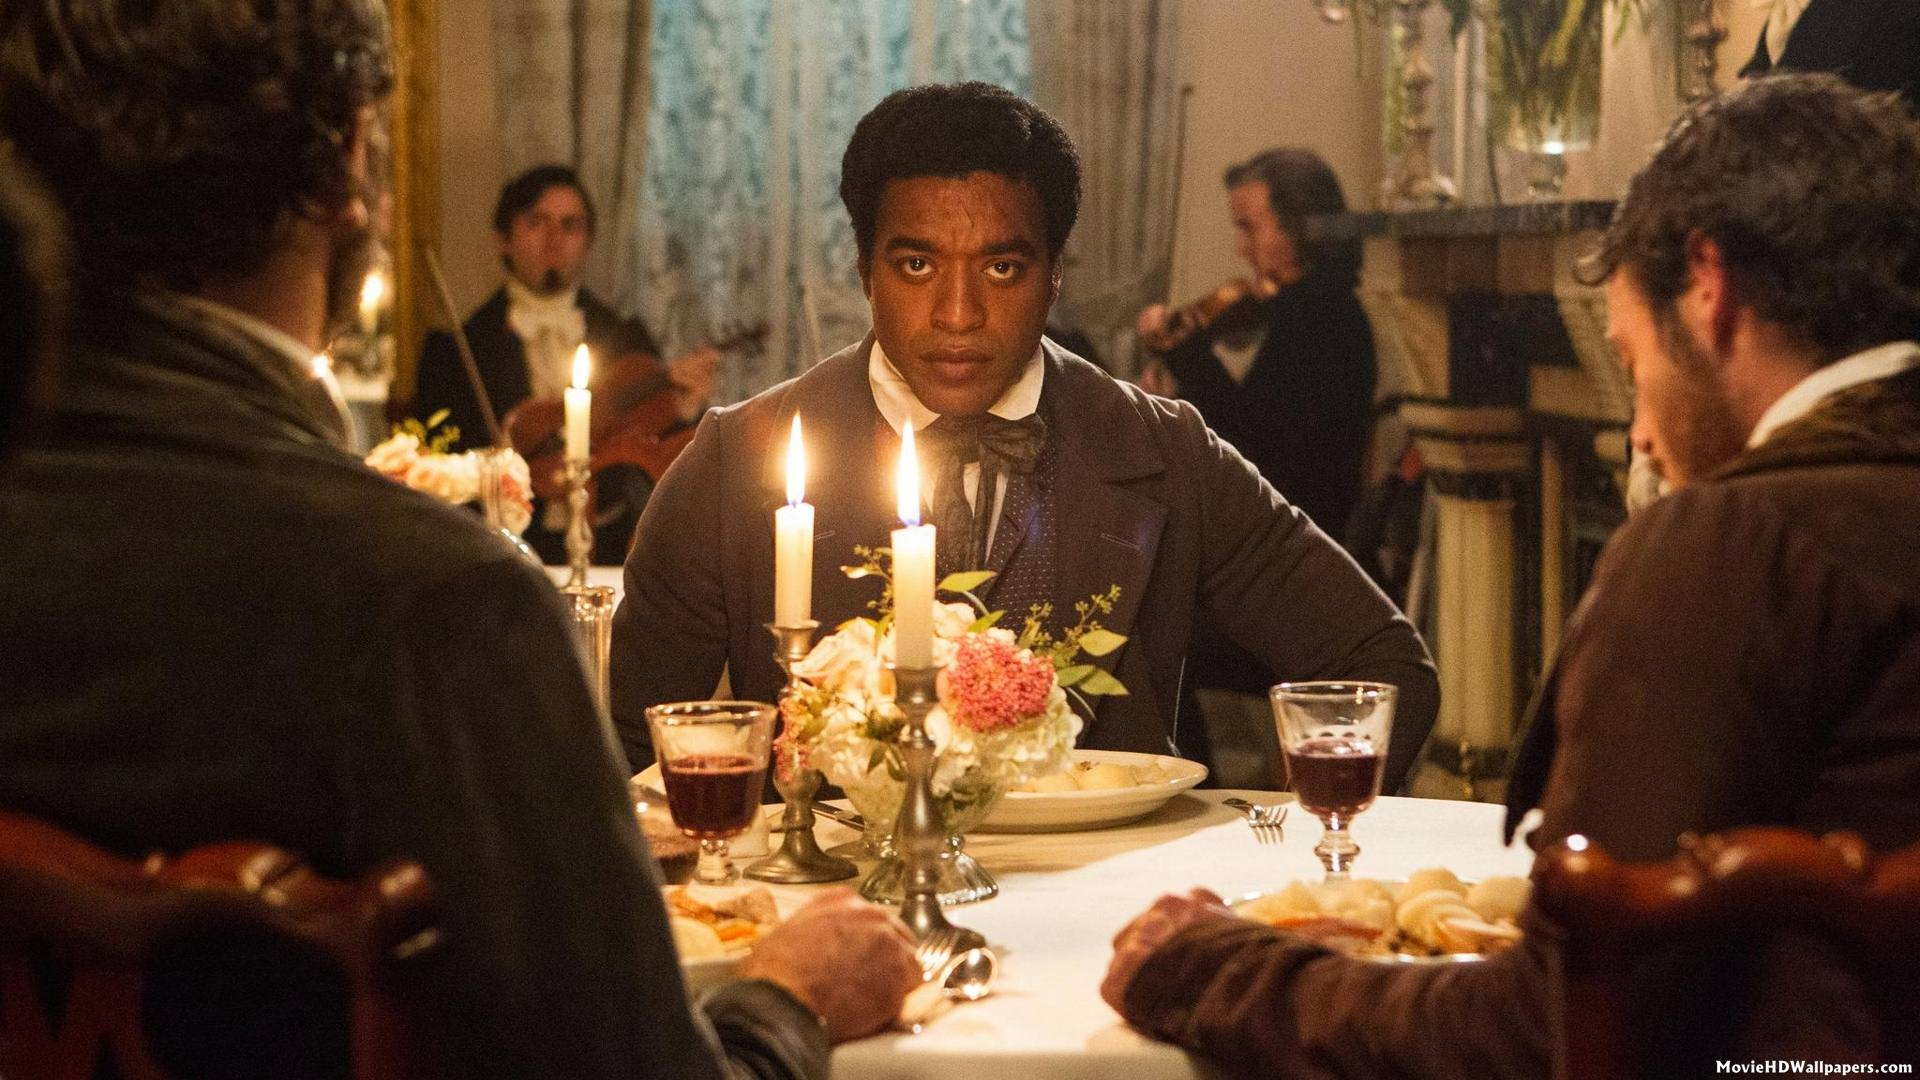 Watch 12 Years A Slave 2013 movie online free.: